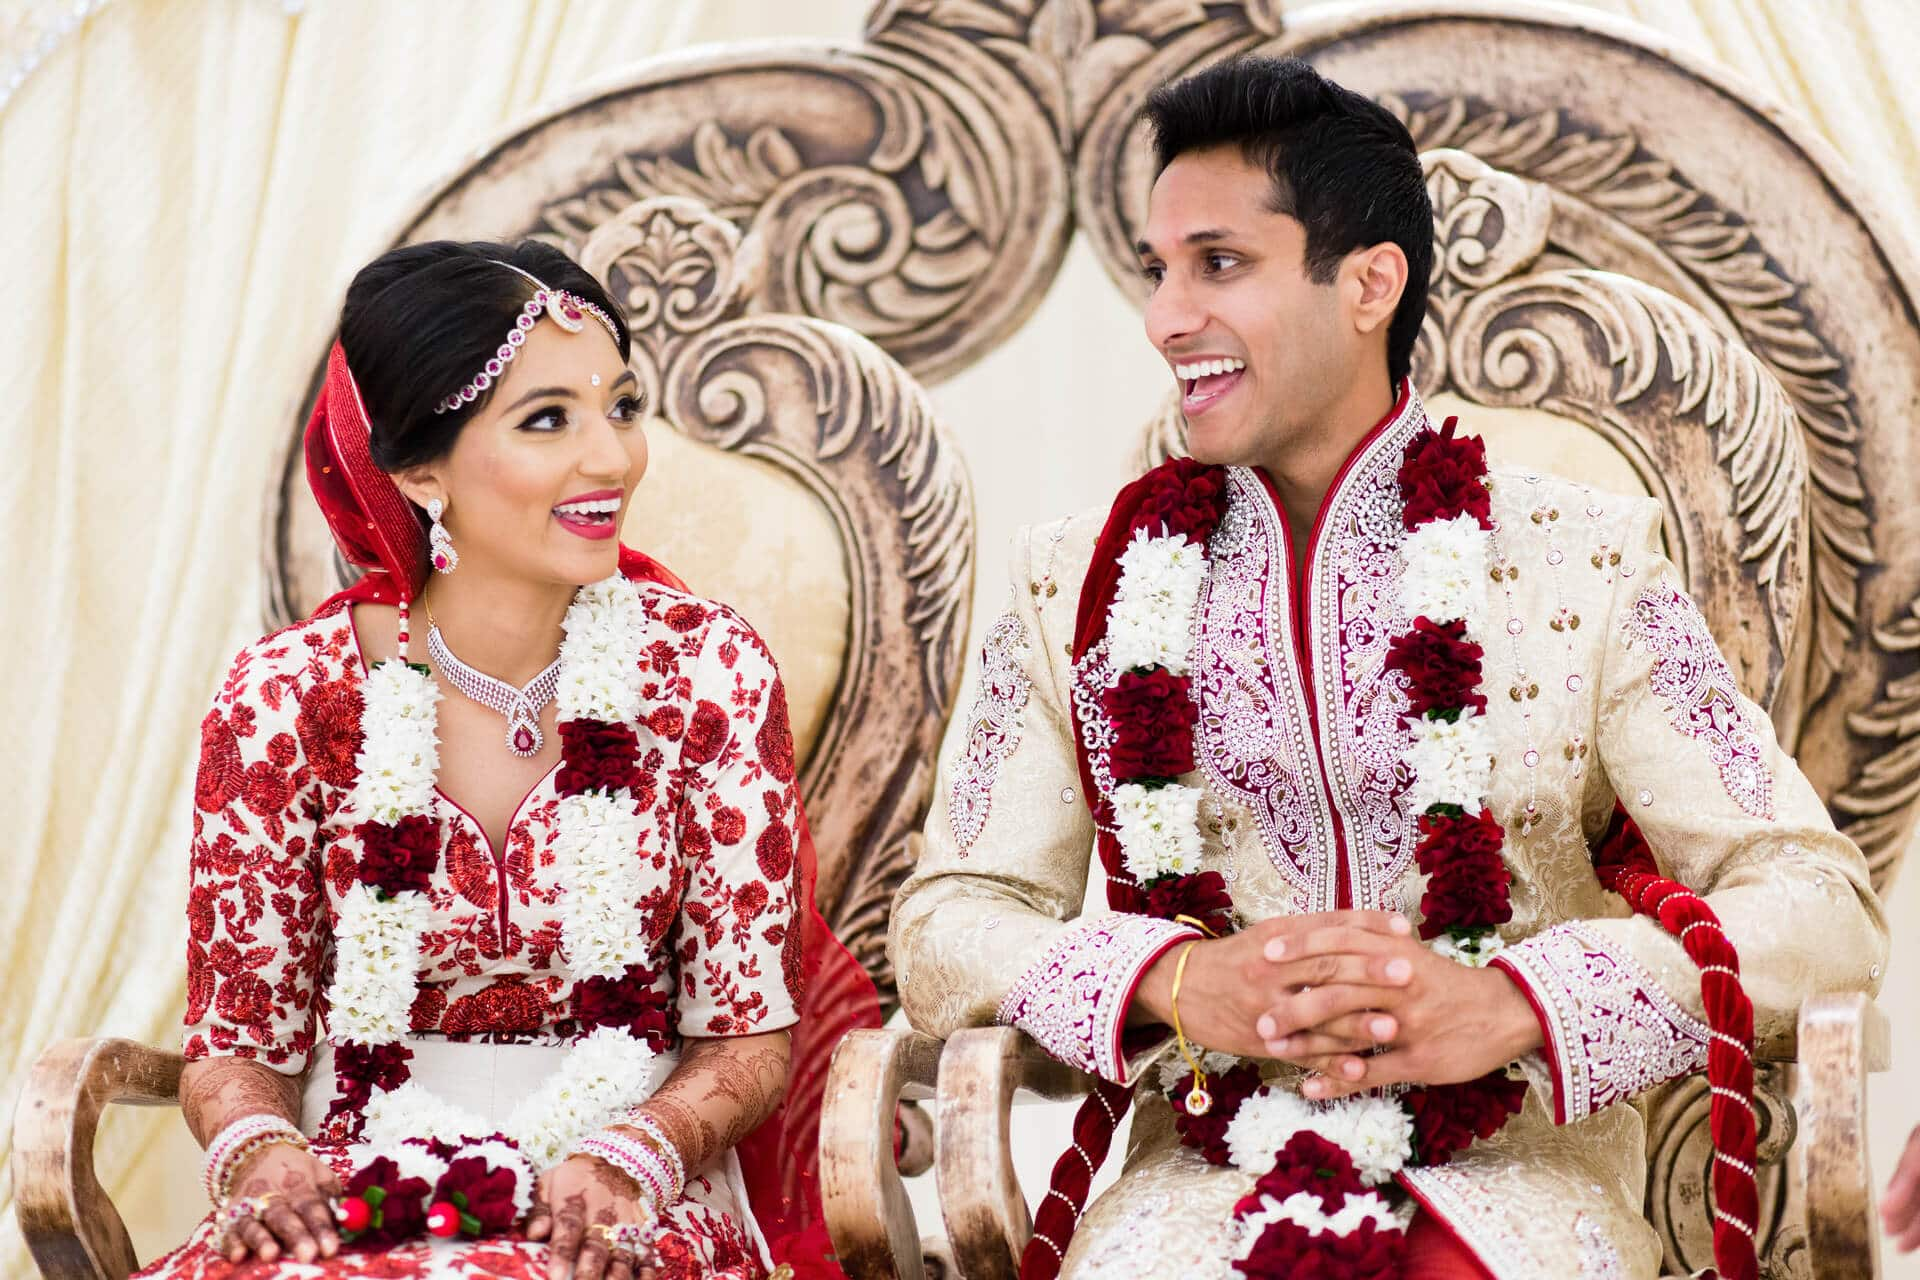 Happy Asian Indian bride and groom